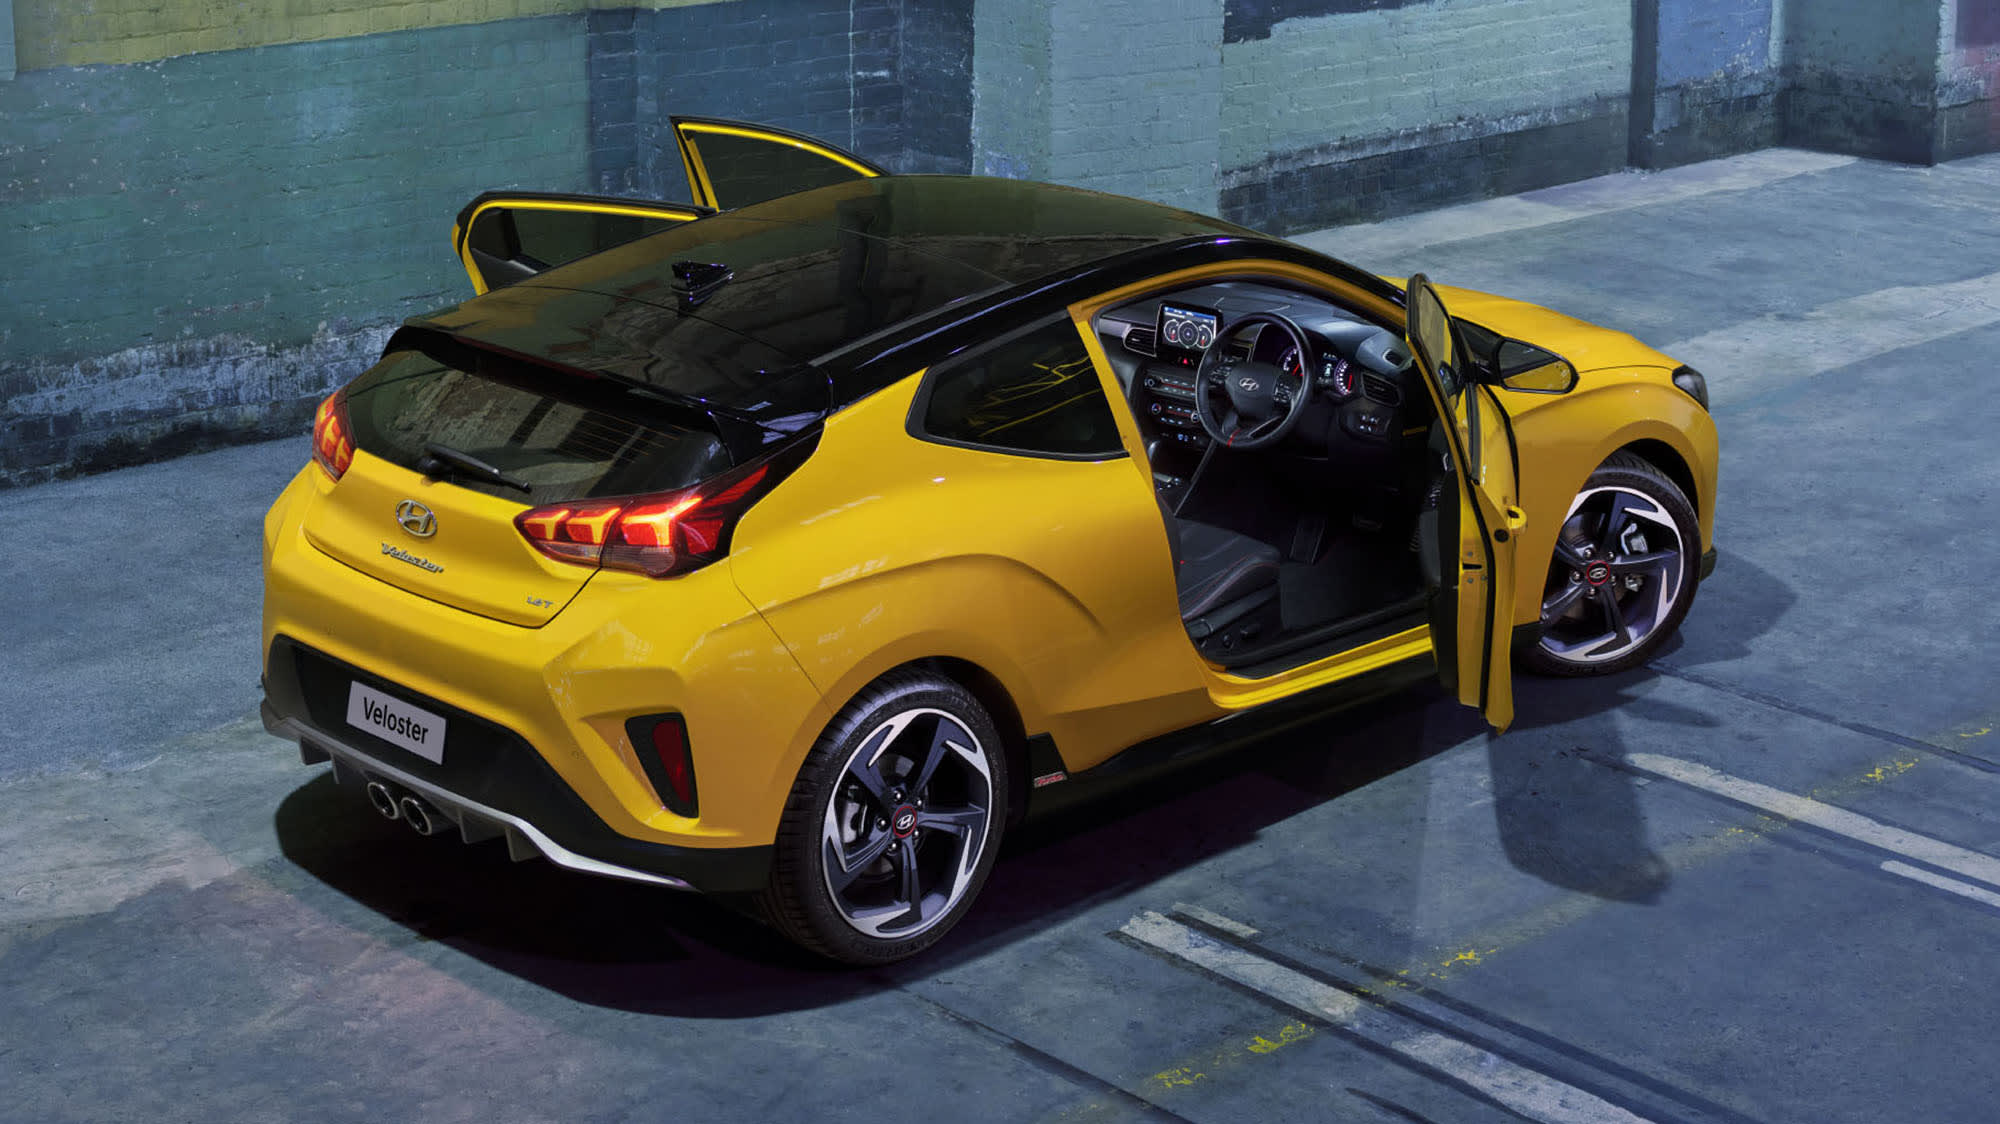 2020 Hyundai Veloster Turbo Rumors